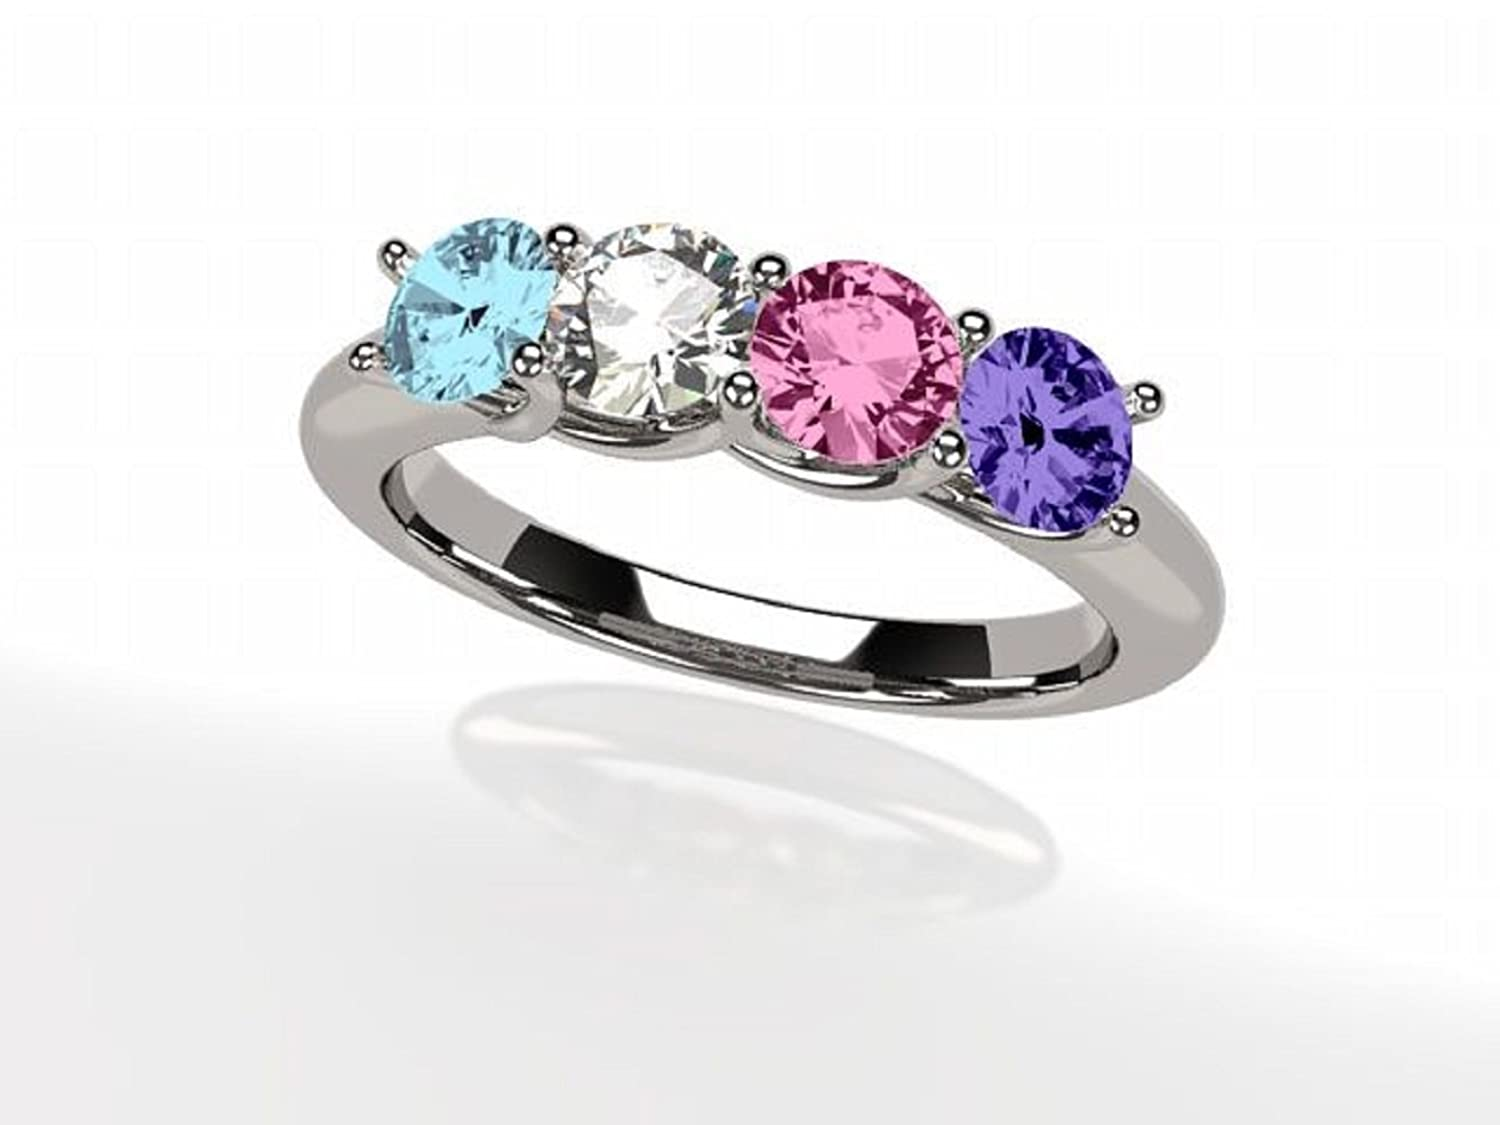 NANA Lucita Mothers Ring 1 to 6 Simulated Birthstones in Sterling Silver or 10k White Yellow & Rose Gold